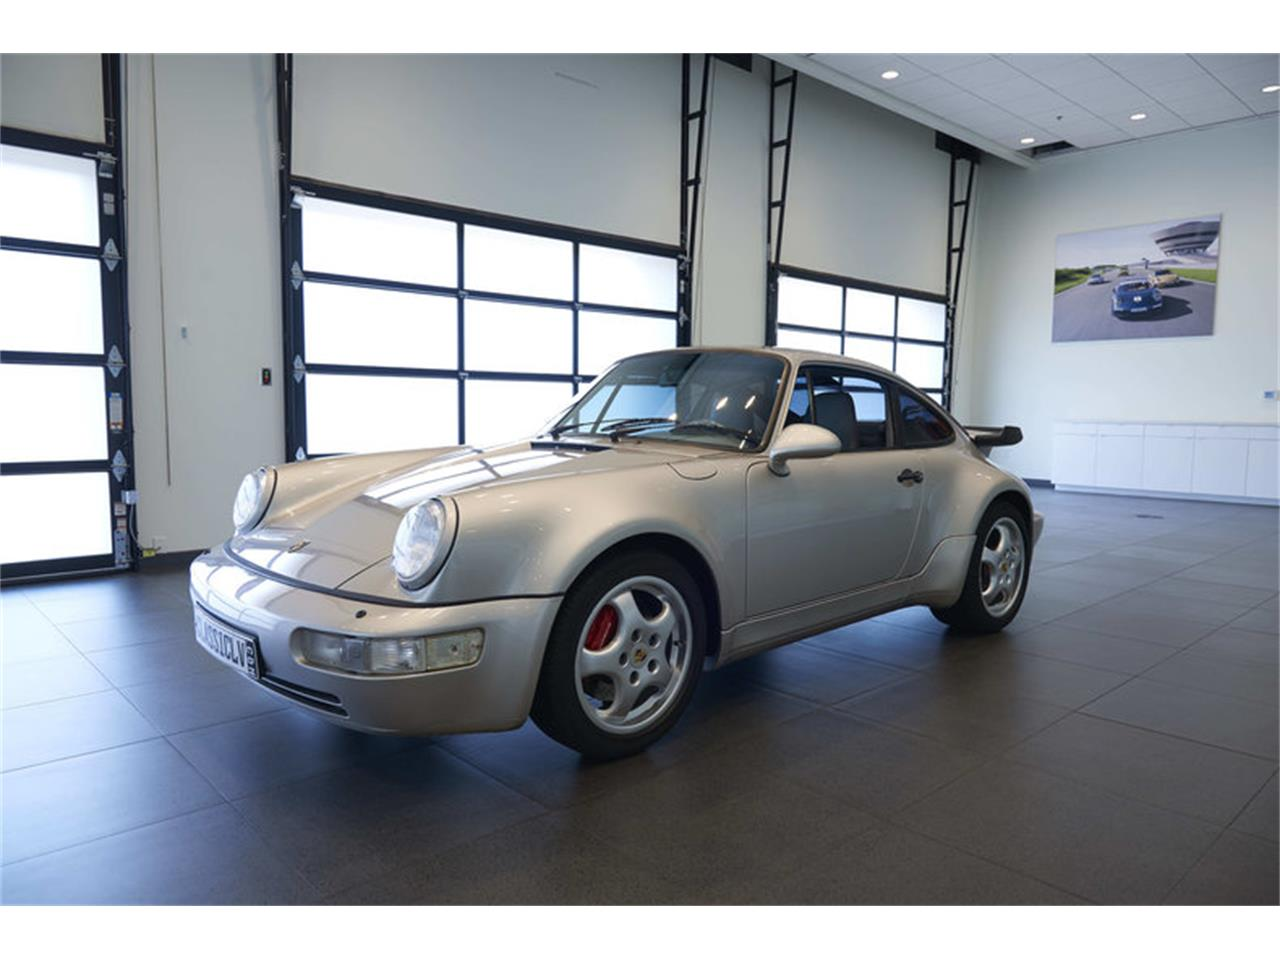 Large Picture of 1991 Porsche 911 Turbo located in Nevada - $149,911.00 Offered by Gaudin Porsche of Las Vegas - LIVG